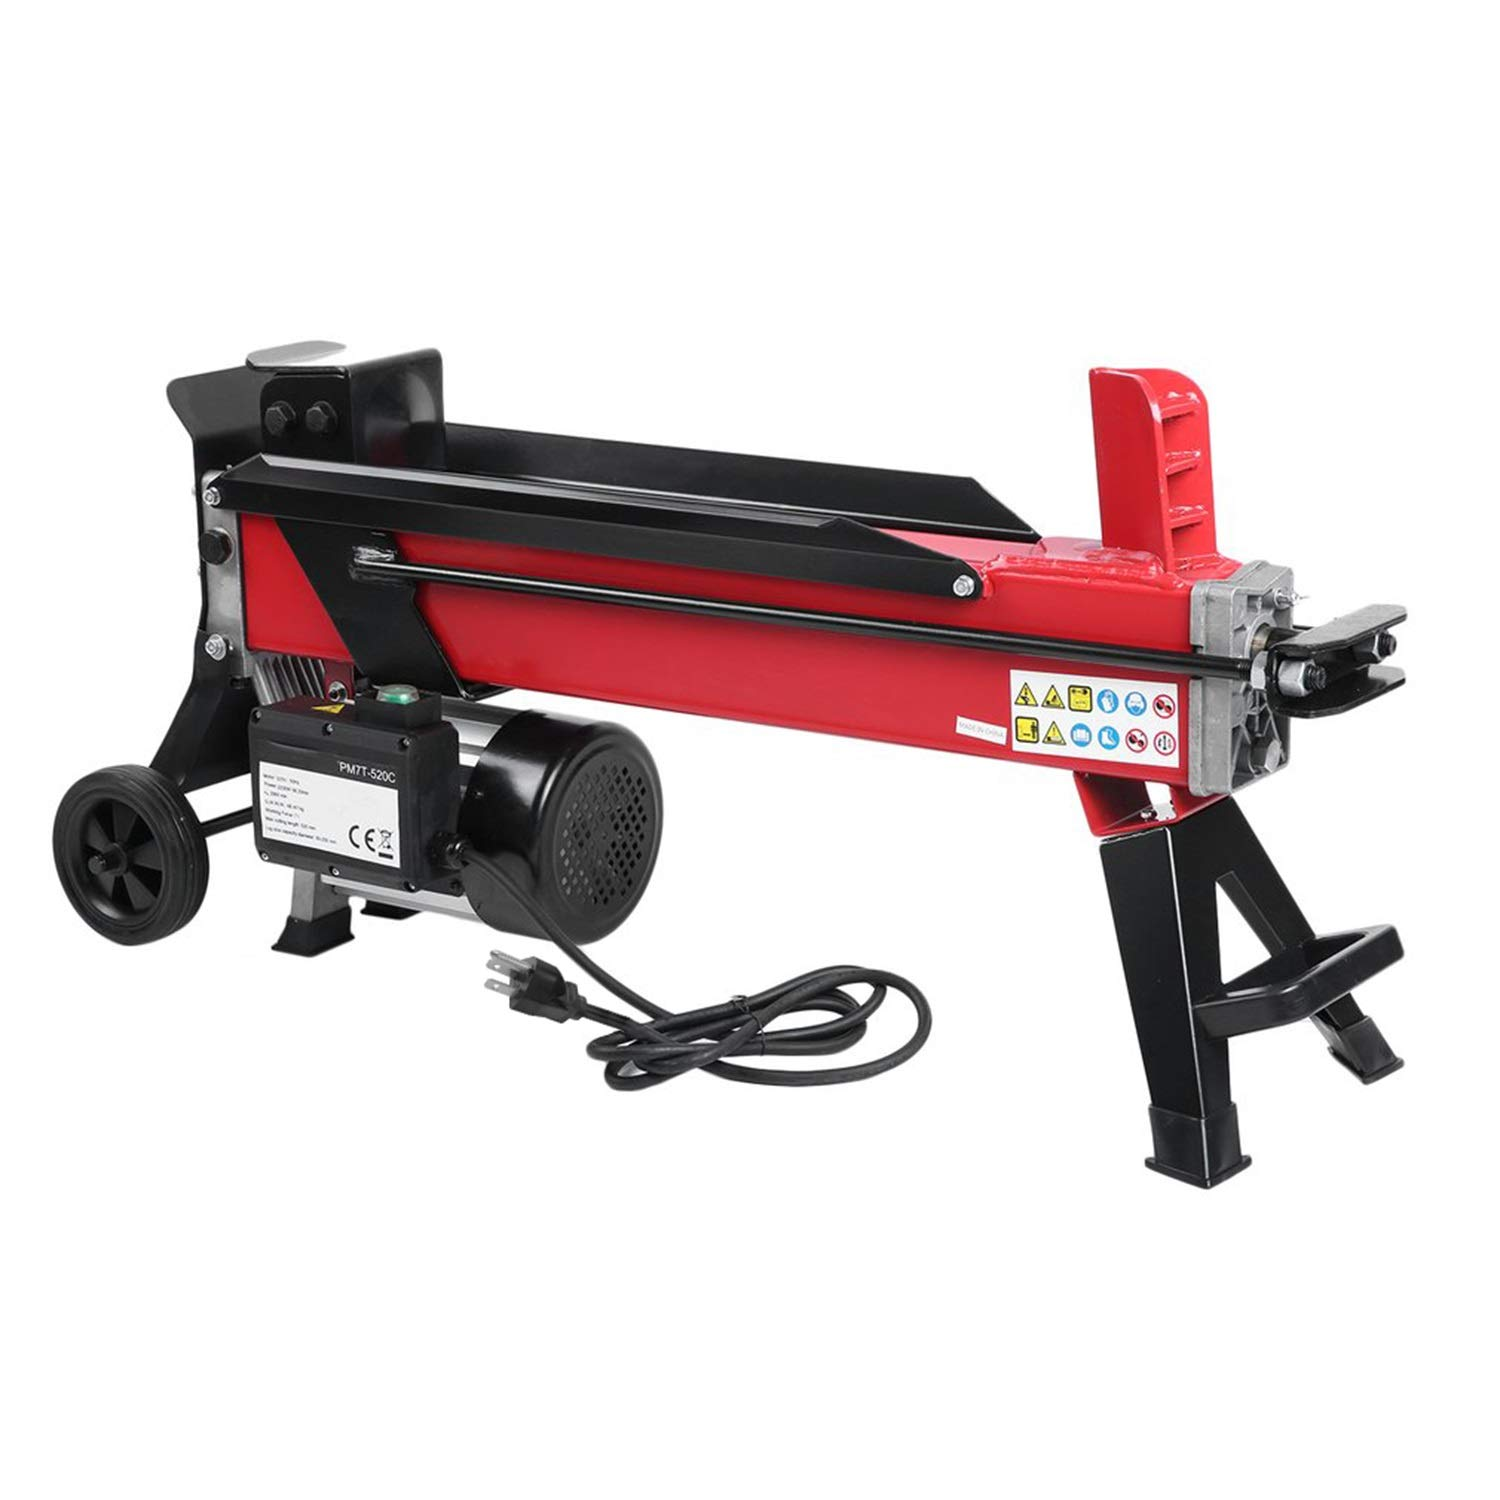 110V Electric Hydraulic Log Splitter 7 Ton Powerful Firewood Chopping Machine Labor Saving Wood Kindling Cutter US Plug